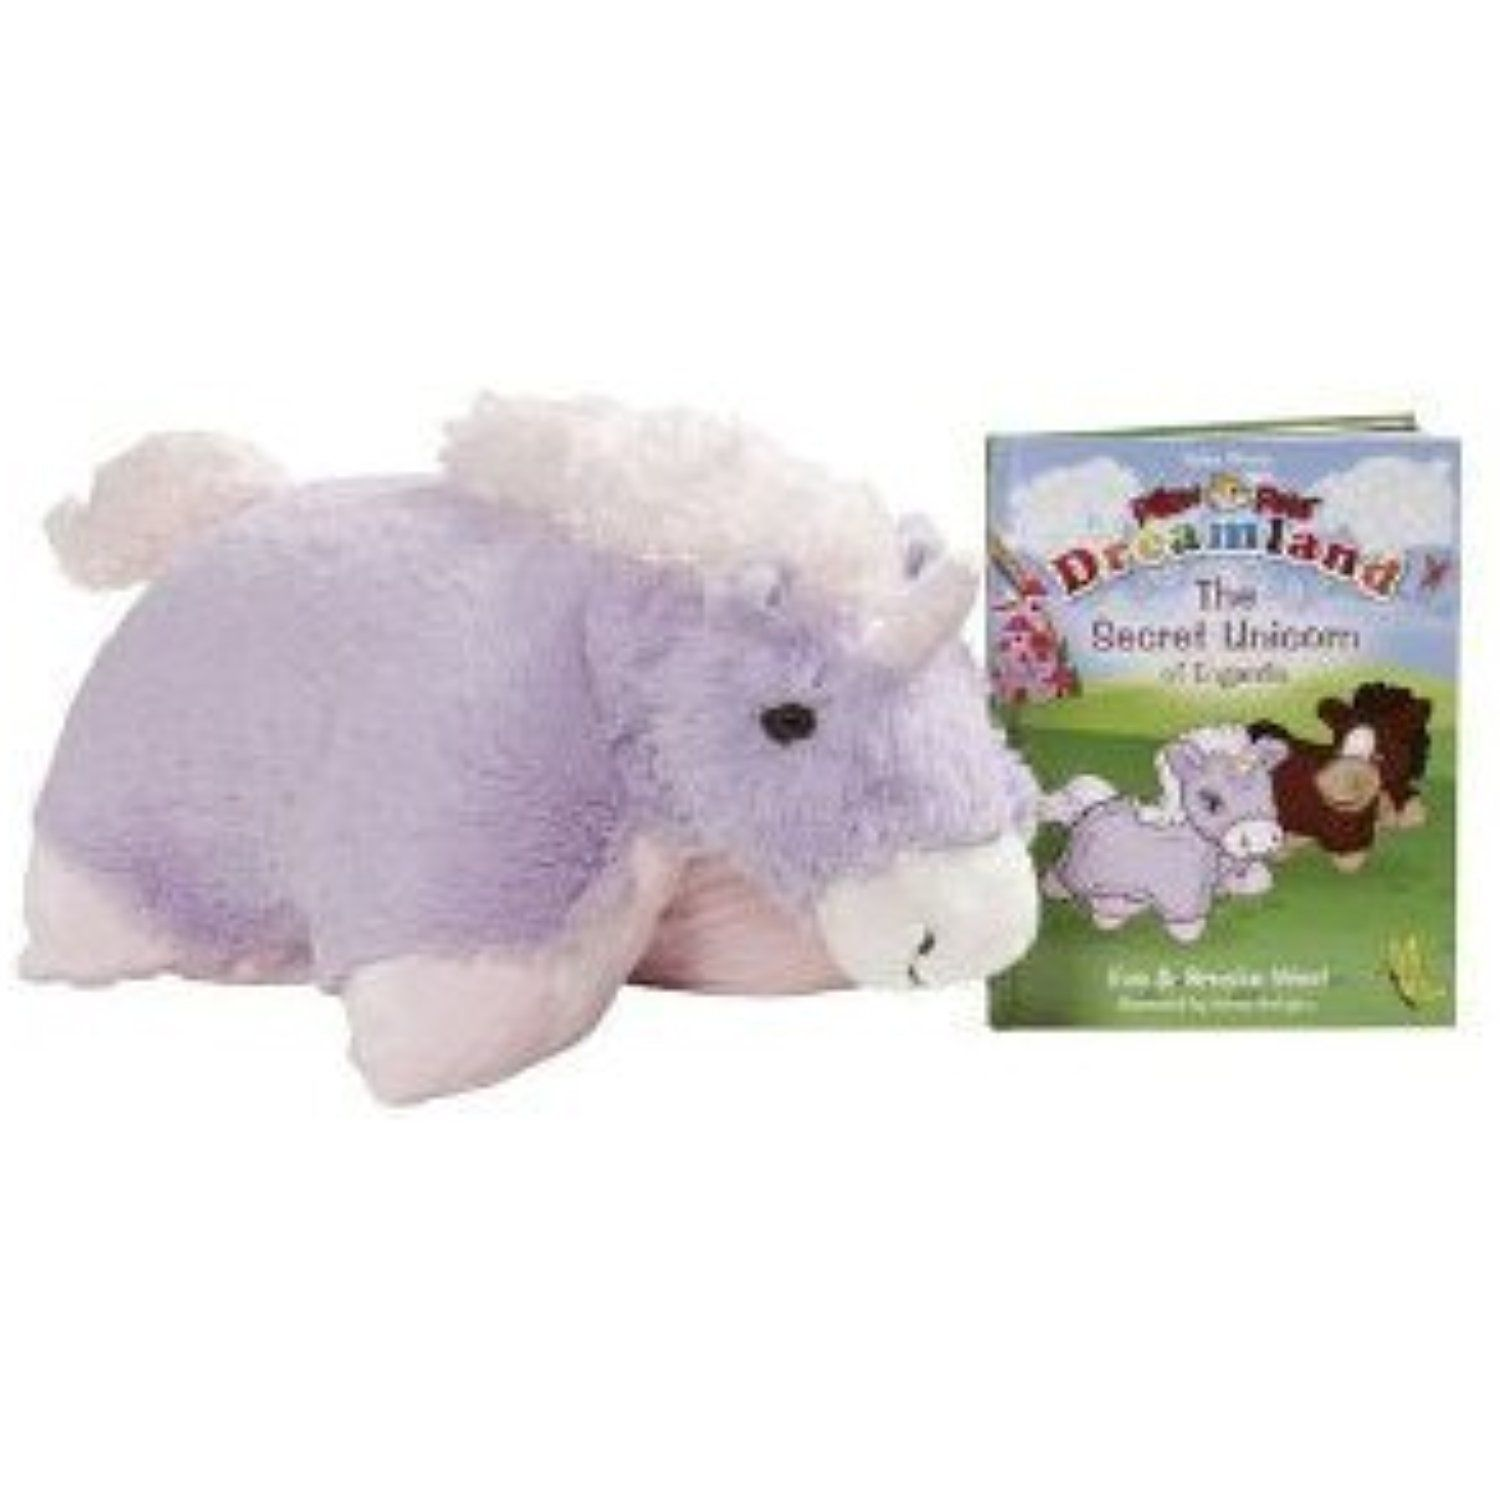 My Pillow Pets Book Engardia And 17 Lavender Unicorn Pillow Pet